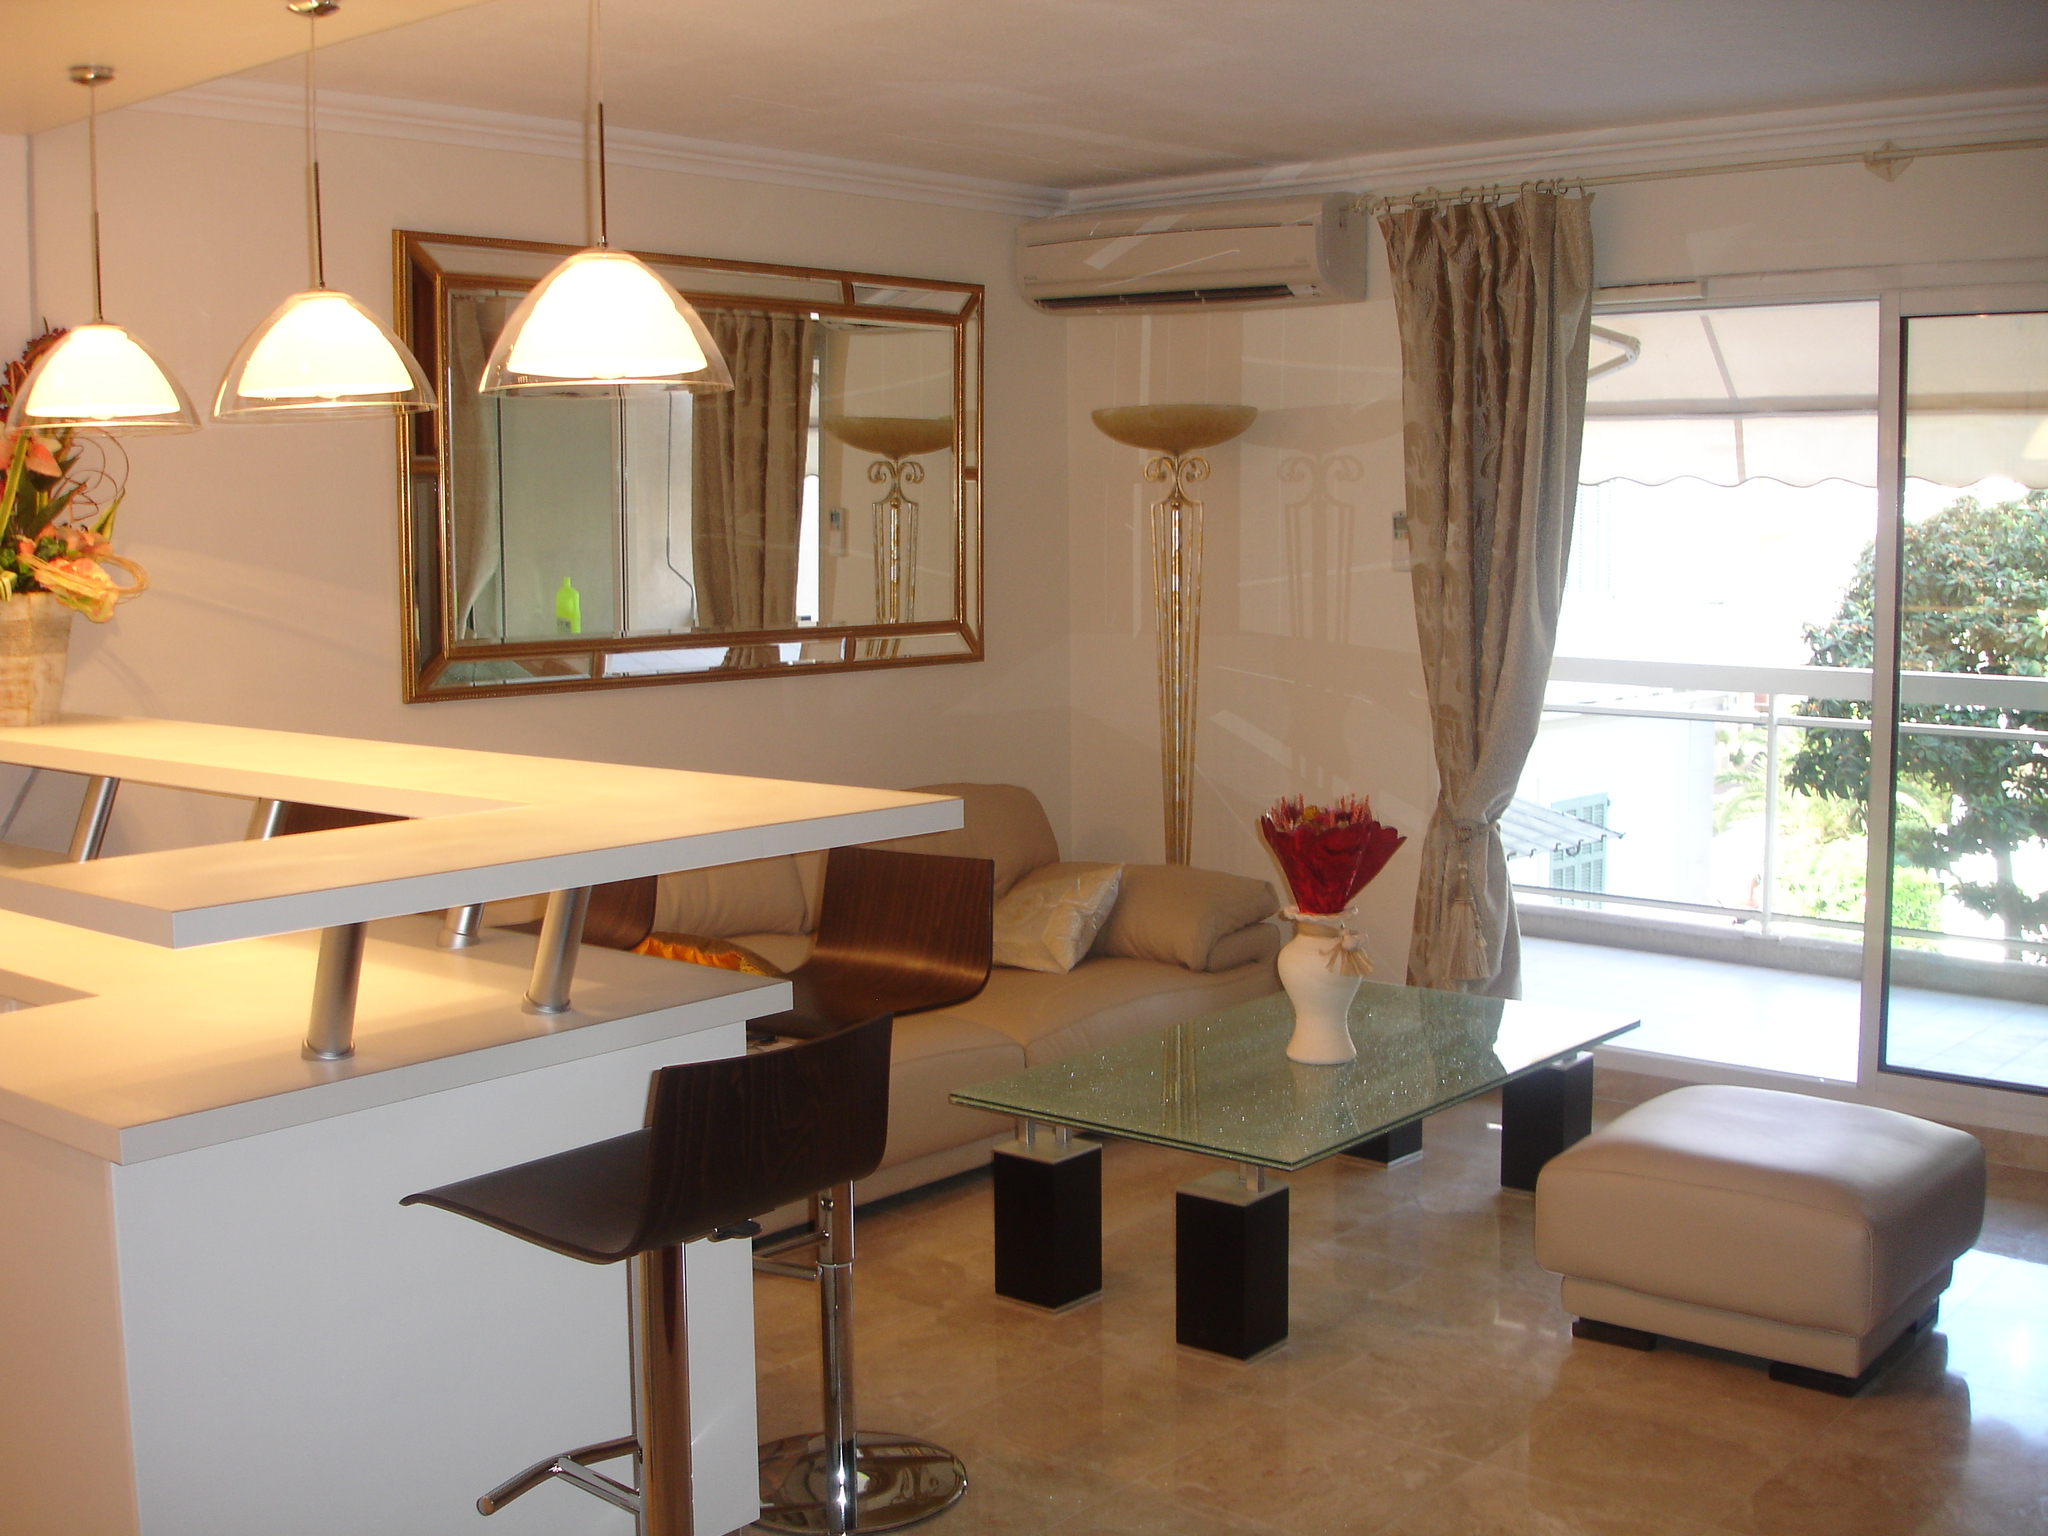 Location appartement vacances cannes studio au t3 meubl for Location studio meuble antibes